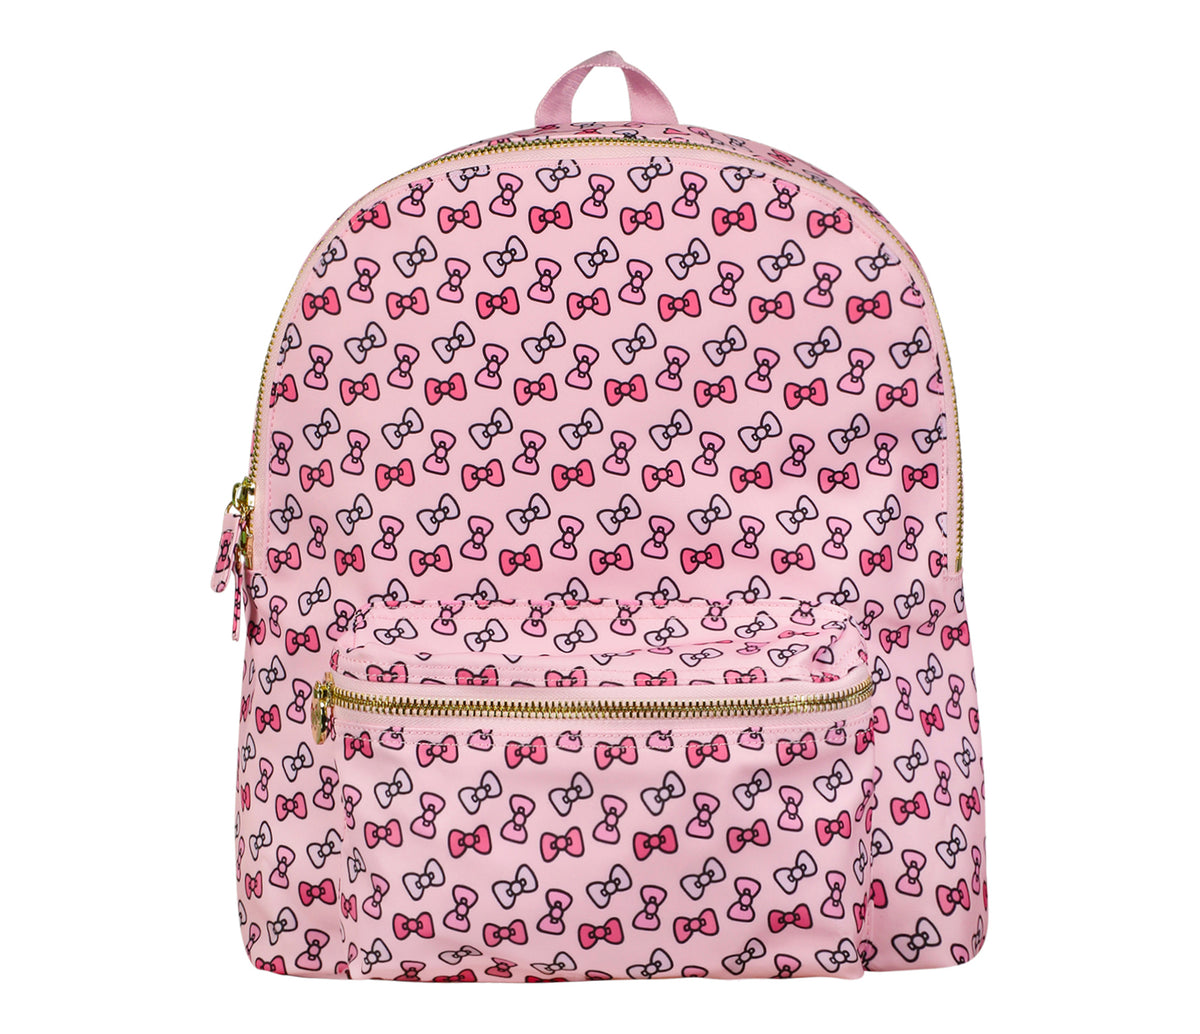 Stoney Clover Lane x Hello Kitty Bows Backpack